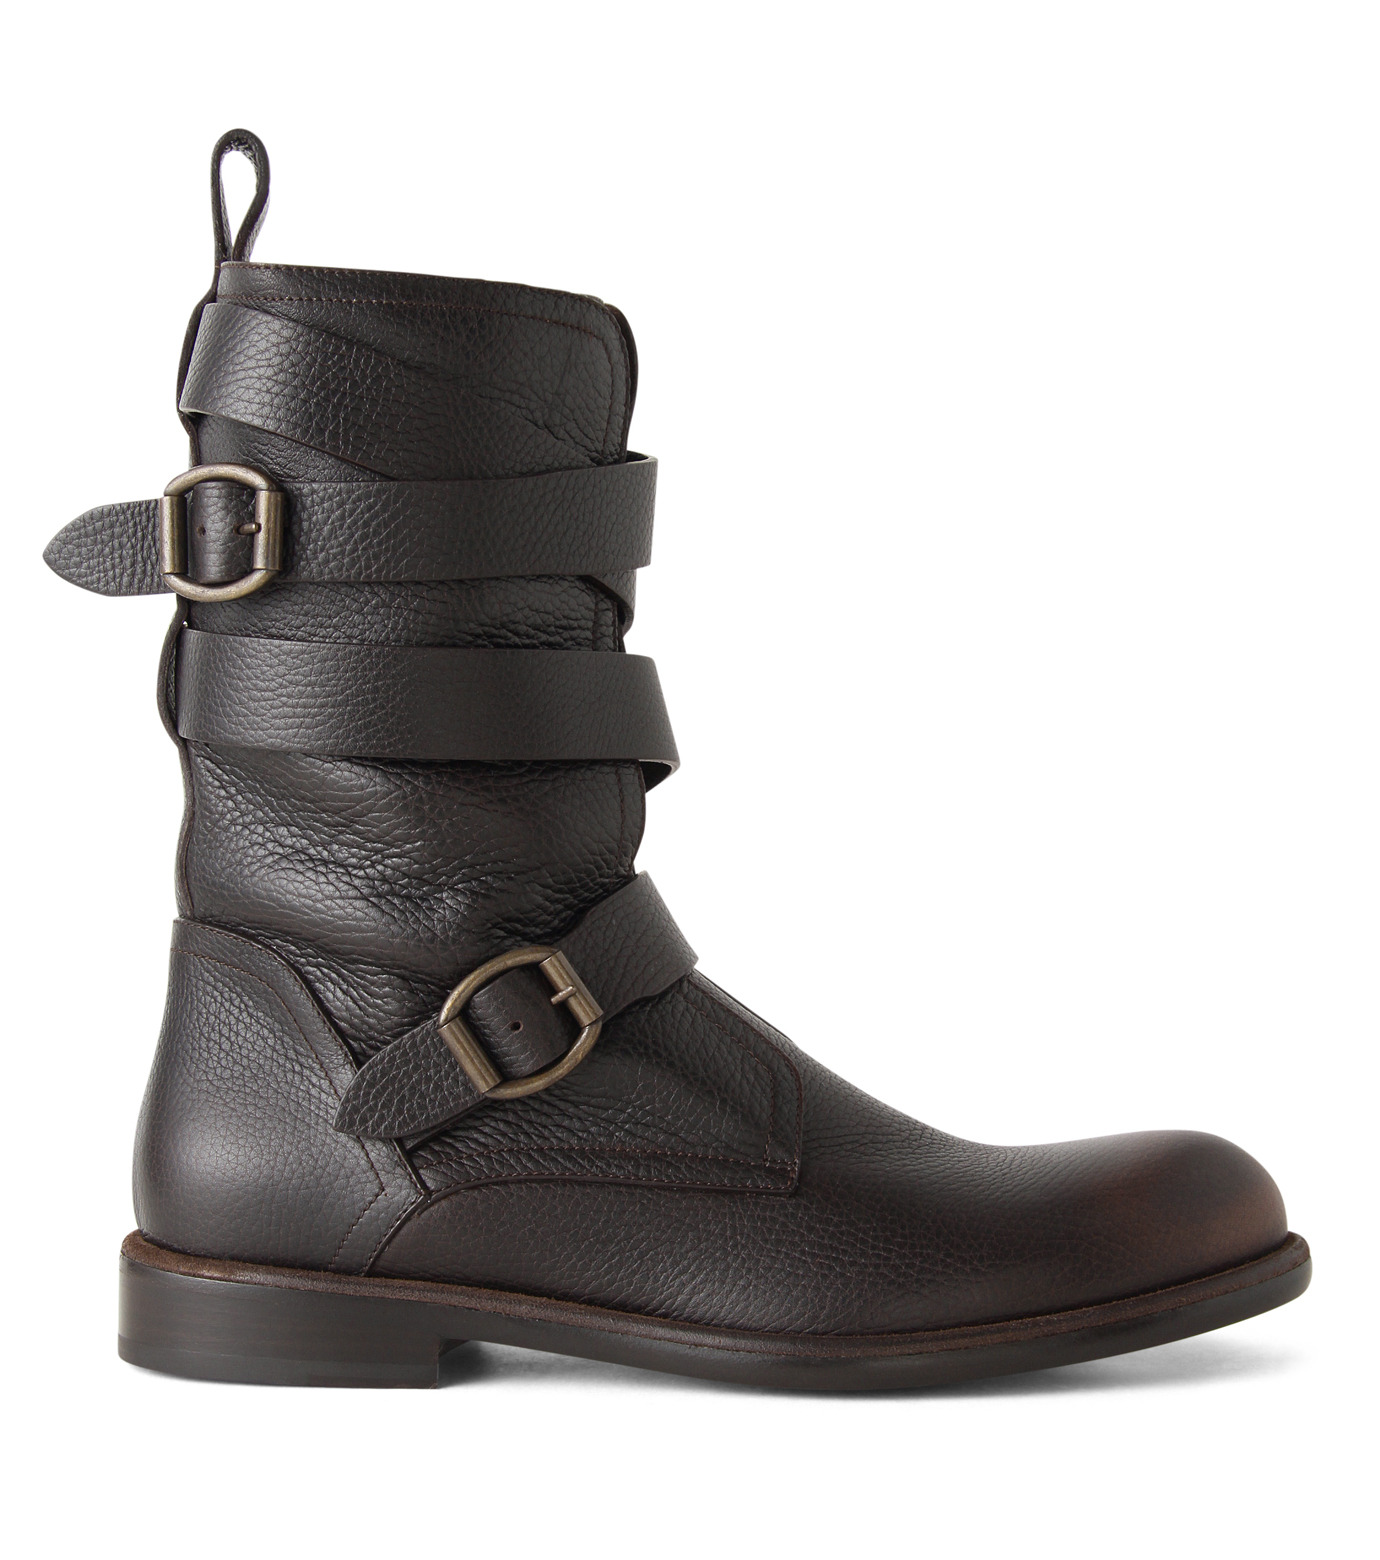 Jimmy Choo(ジミーチュウ)のBelted Boots-BROWN(ブーツ/boots)-152RIDLE-GBL-42 拡大詳細画像1